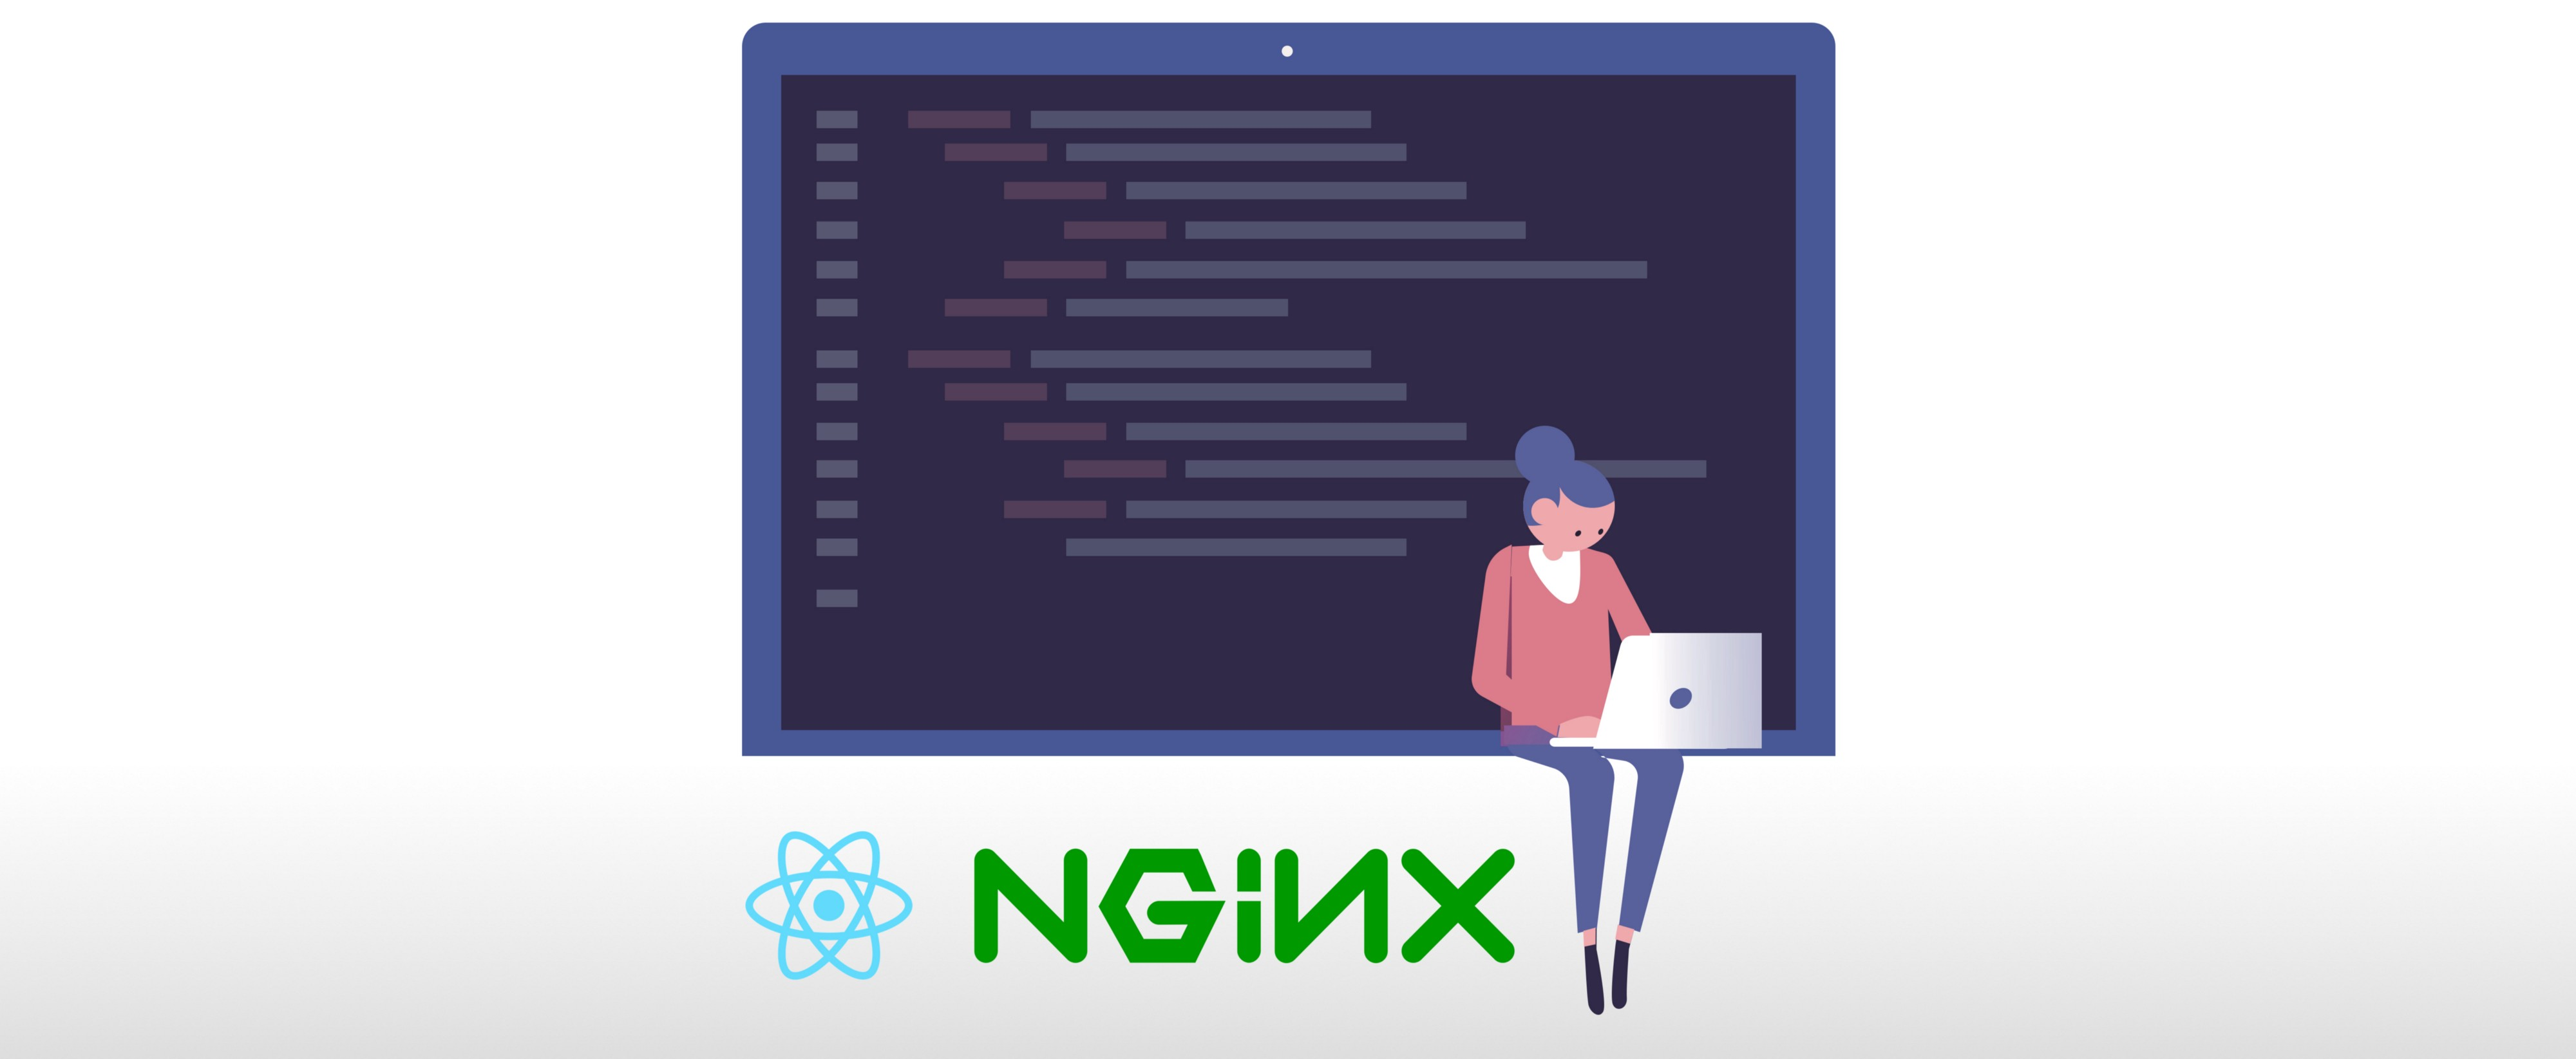 How to setup nginx for react - codeburst